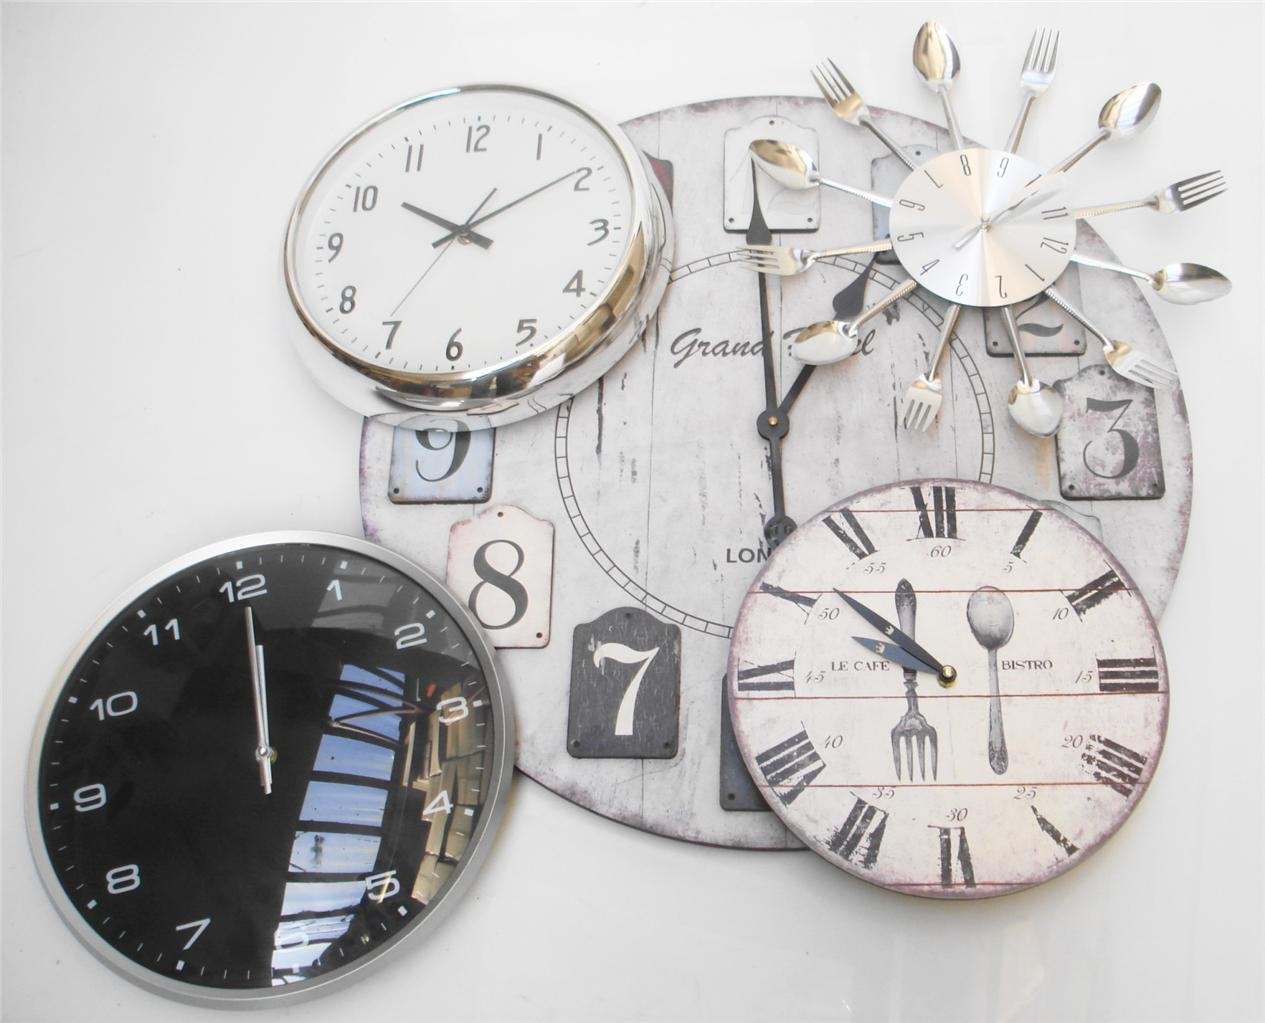 Clocks for bathroom wall - Bathroom Chrome Wall Clock